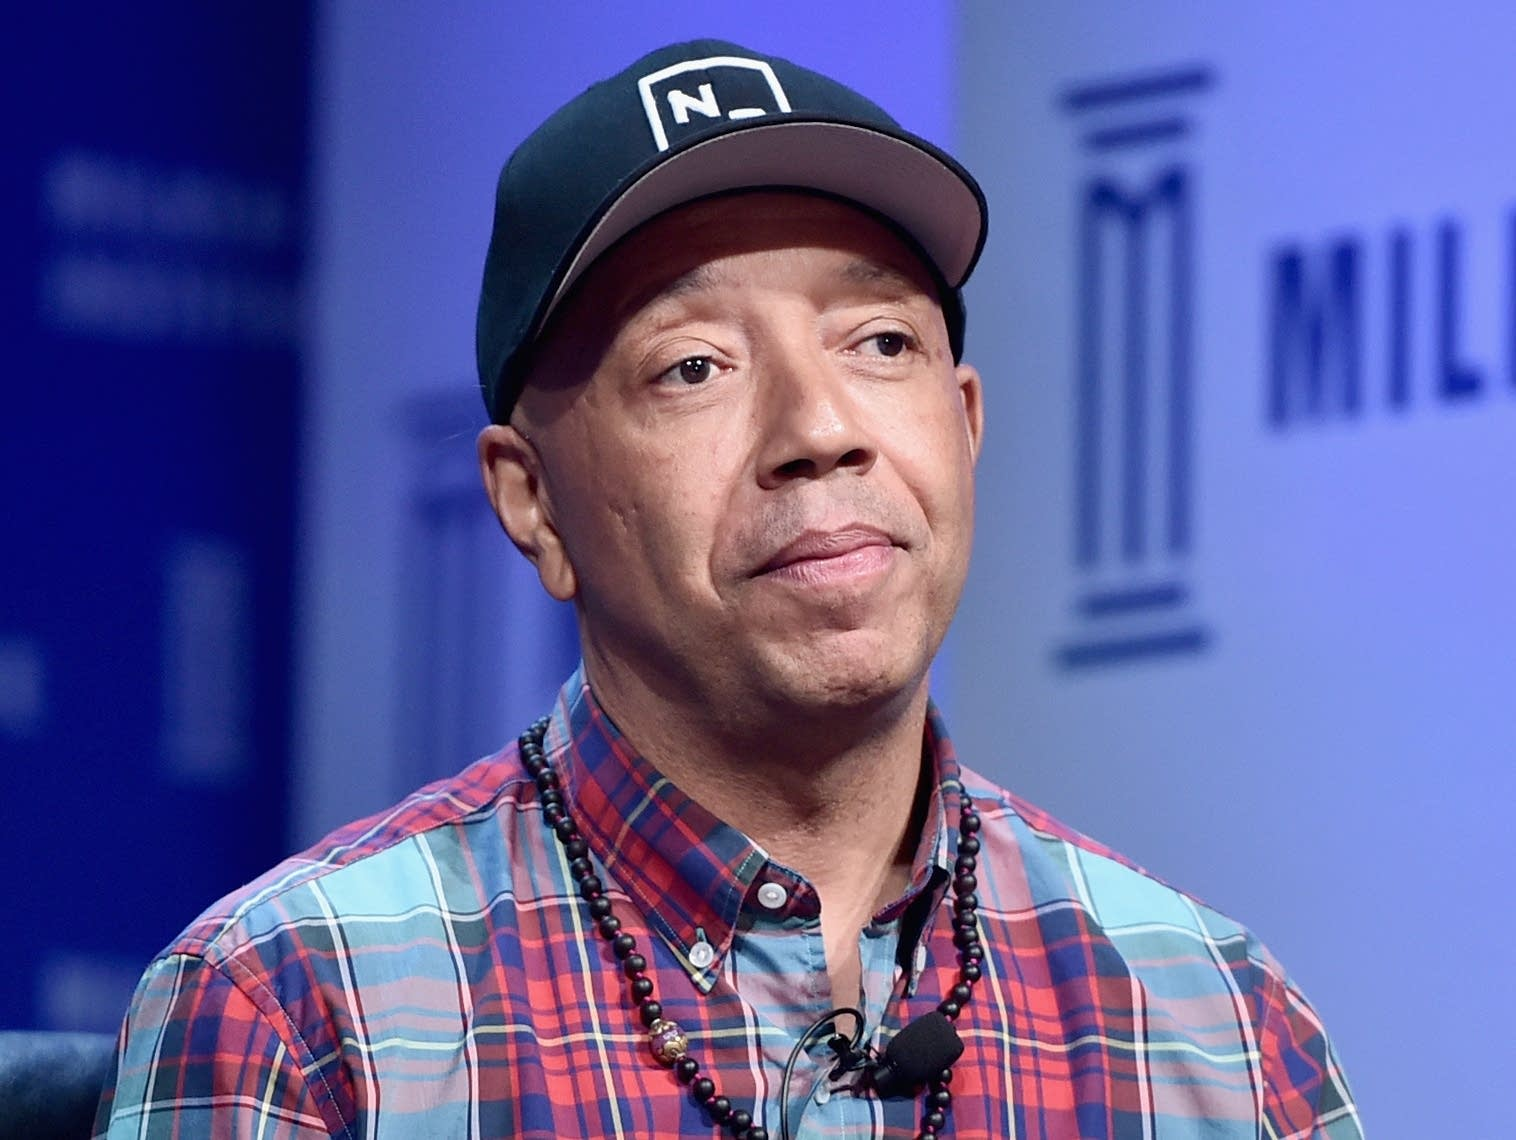 Russell Simmons at a conference in 2016.